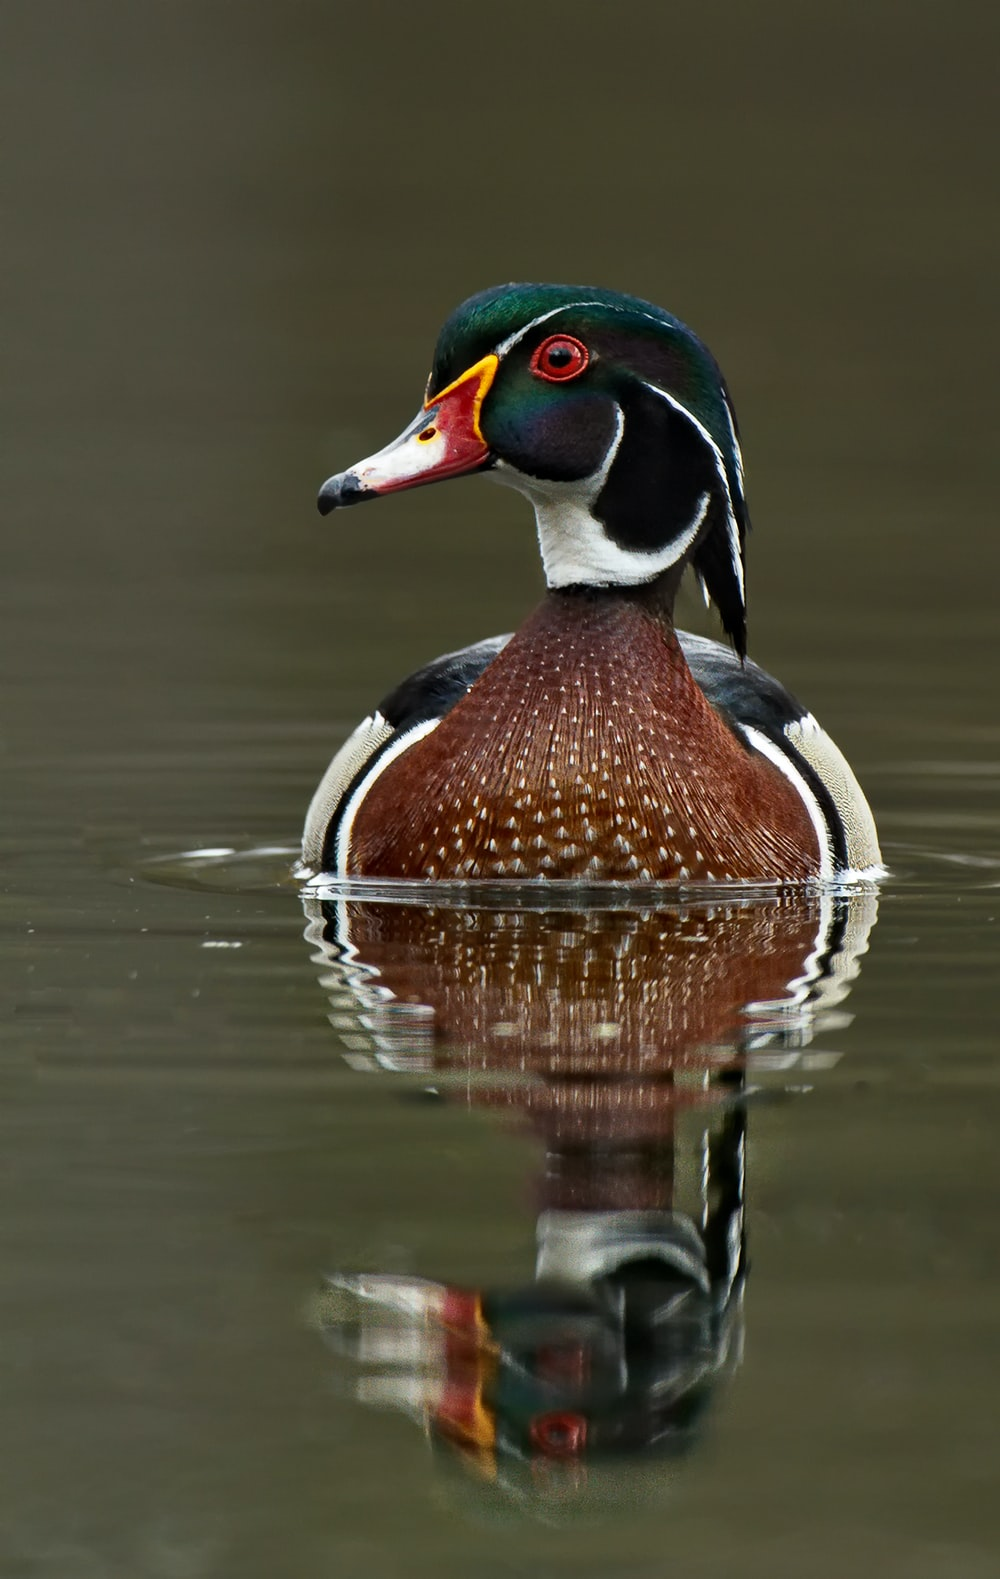 brown and red mallard duck on top of body of water